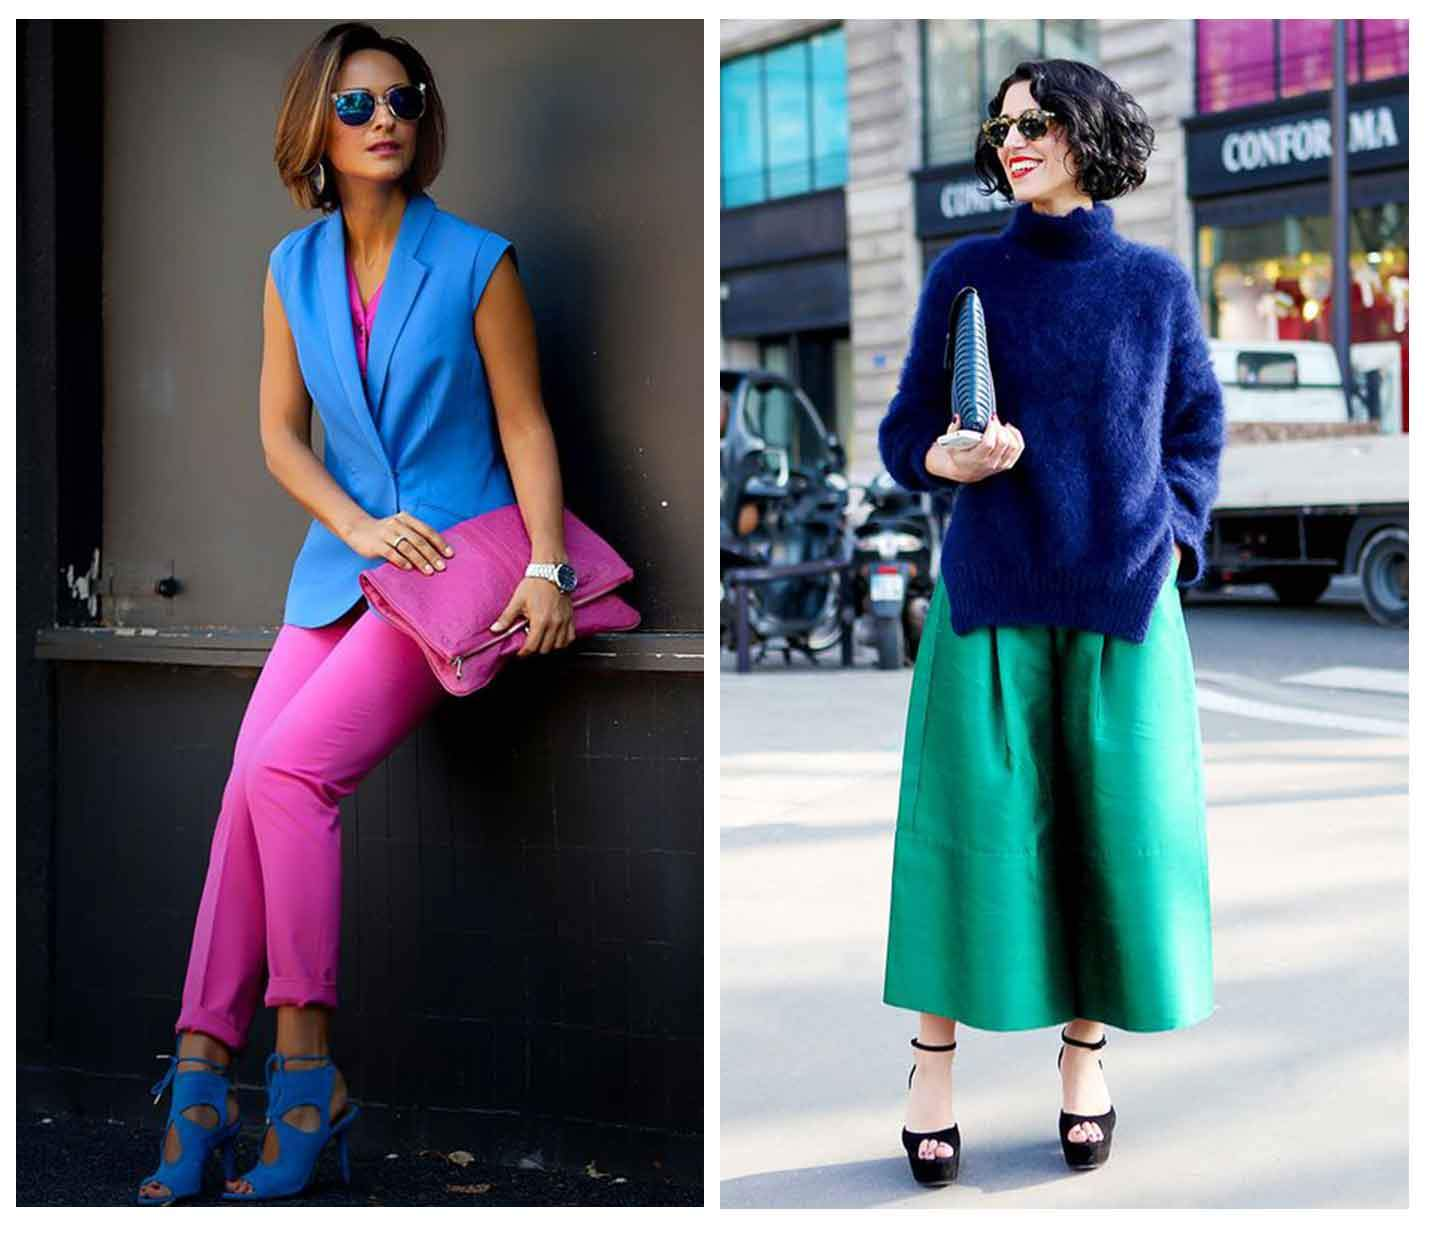 one-woman-leaning-against-a-wall-wearing-a-blue-waistcoat-with-pink-trousers-and-another-woman-wearing-a-blue-jumper-with-a-green-skirt-standing-in-the-street